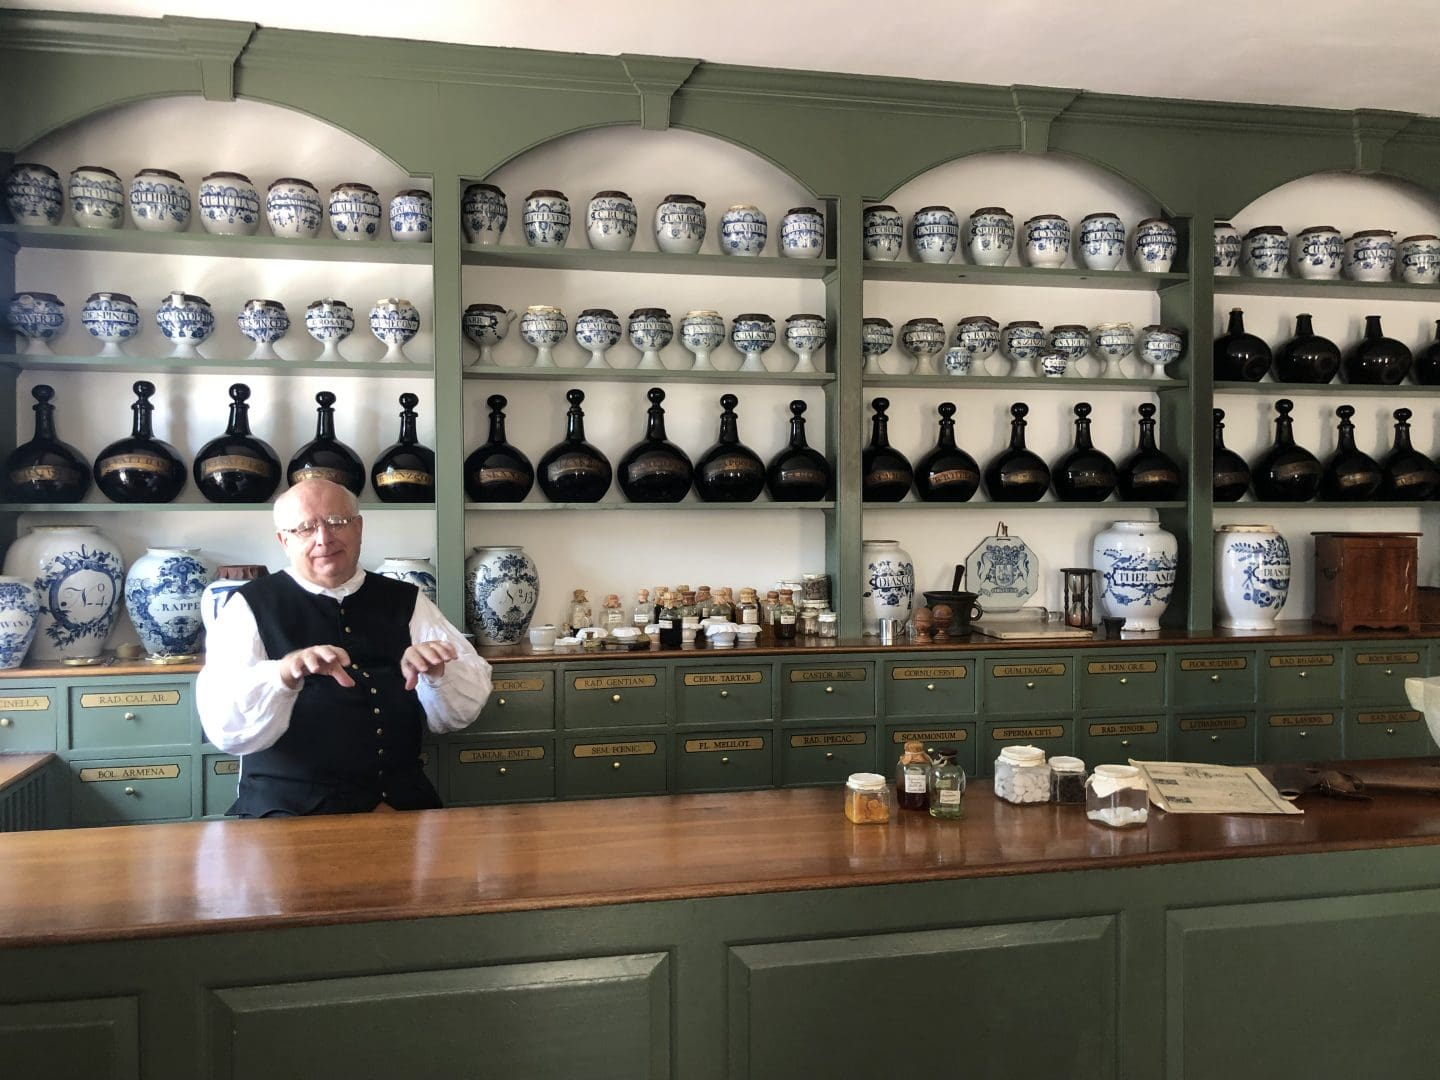 colonial snacks and apothecary in Colonial Williamsburg